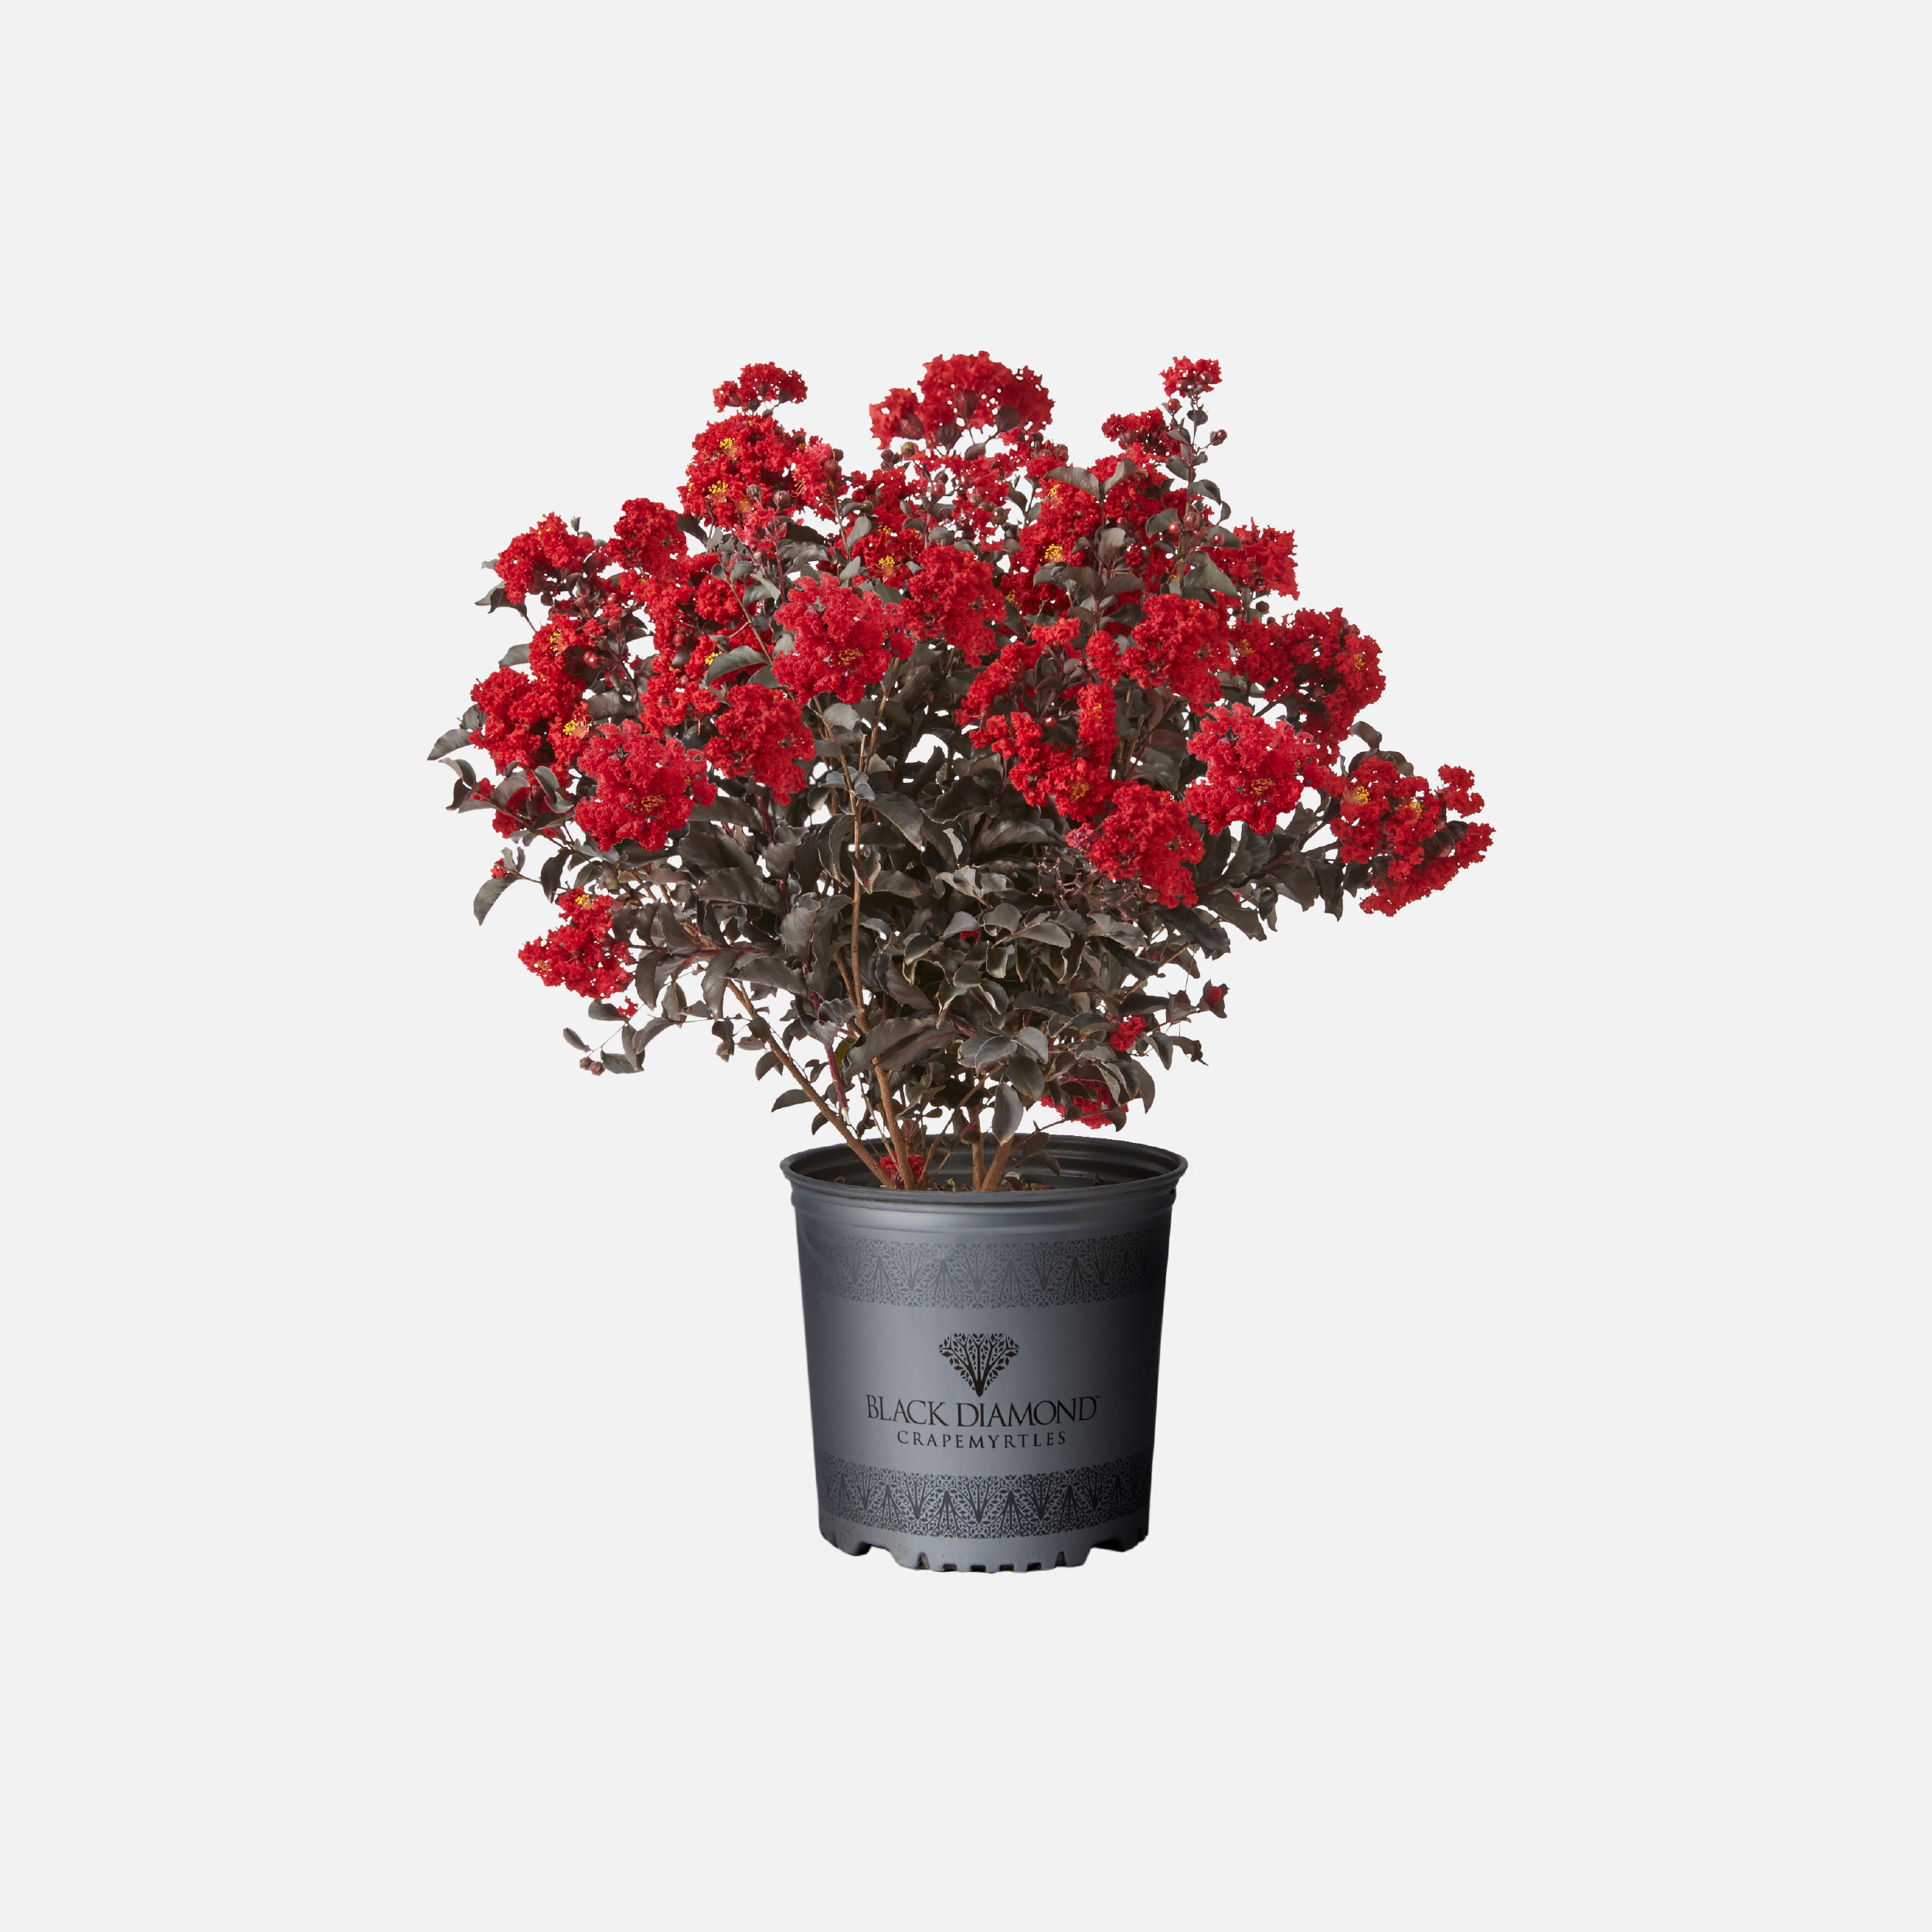 Black Diamond Crapemyrtles container